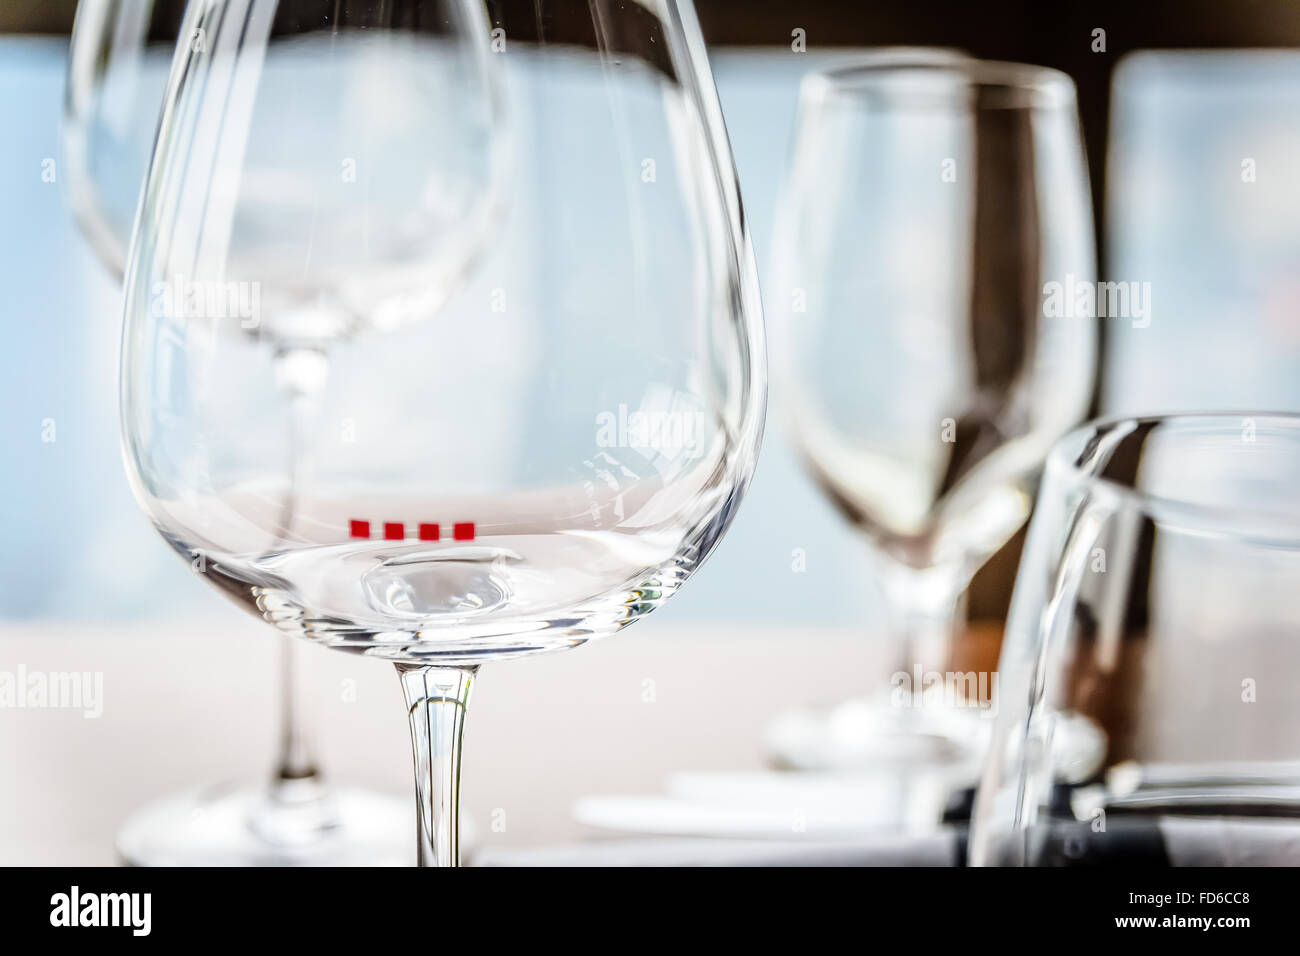 glassware and china in modern contemporary high class fine dining  - stock photo  glassware and china in modern contemporary high class finedining restaurant interior